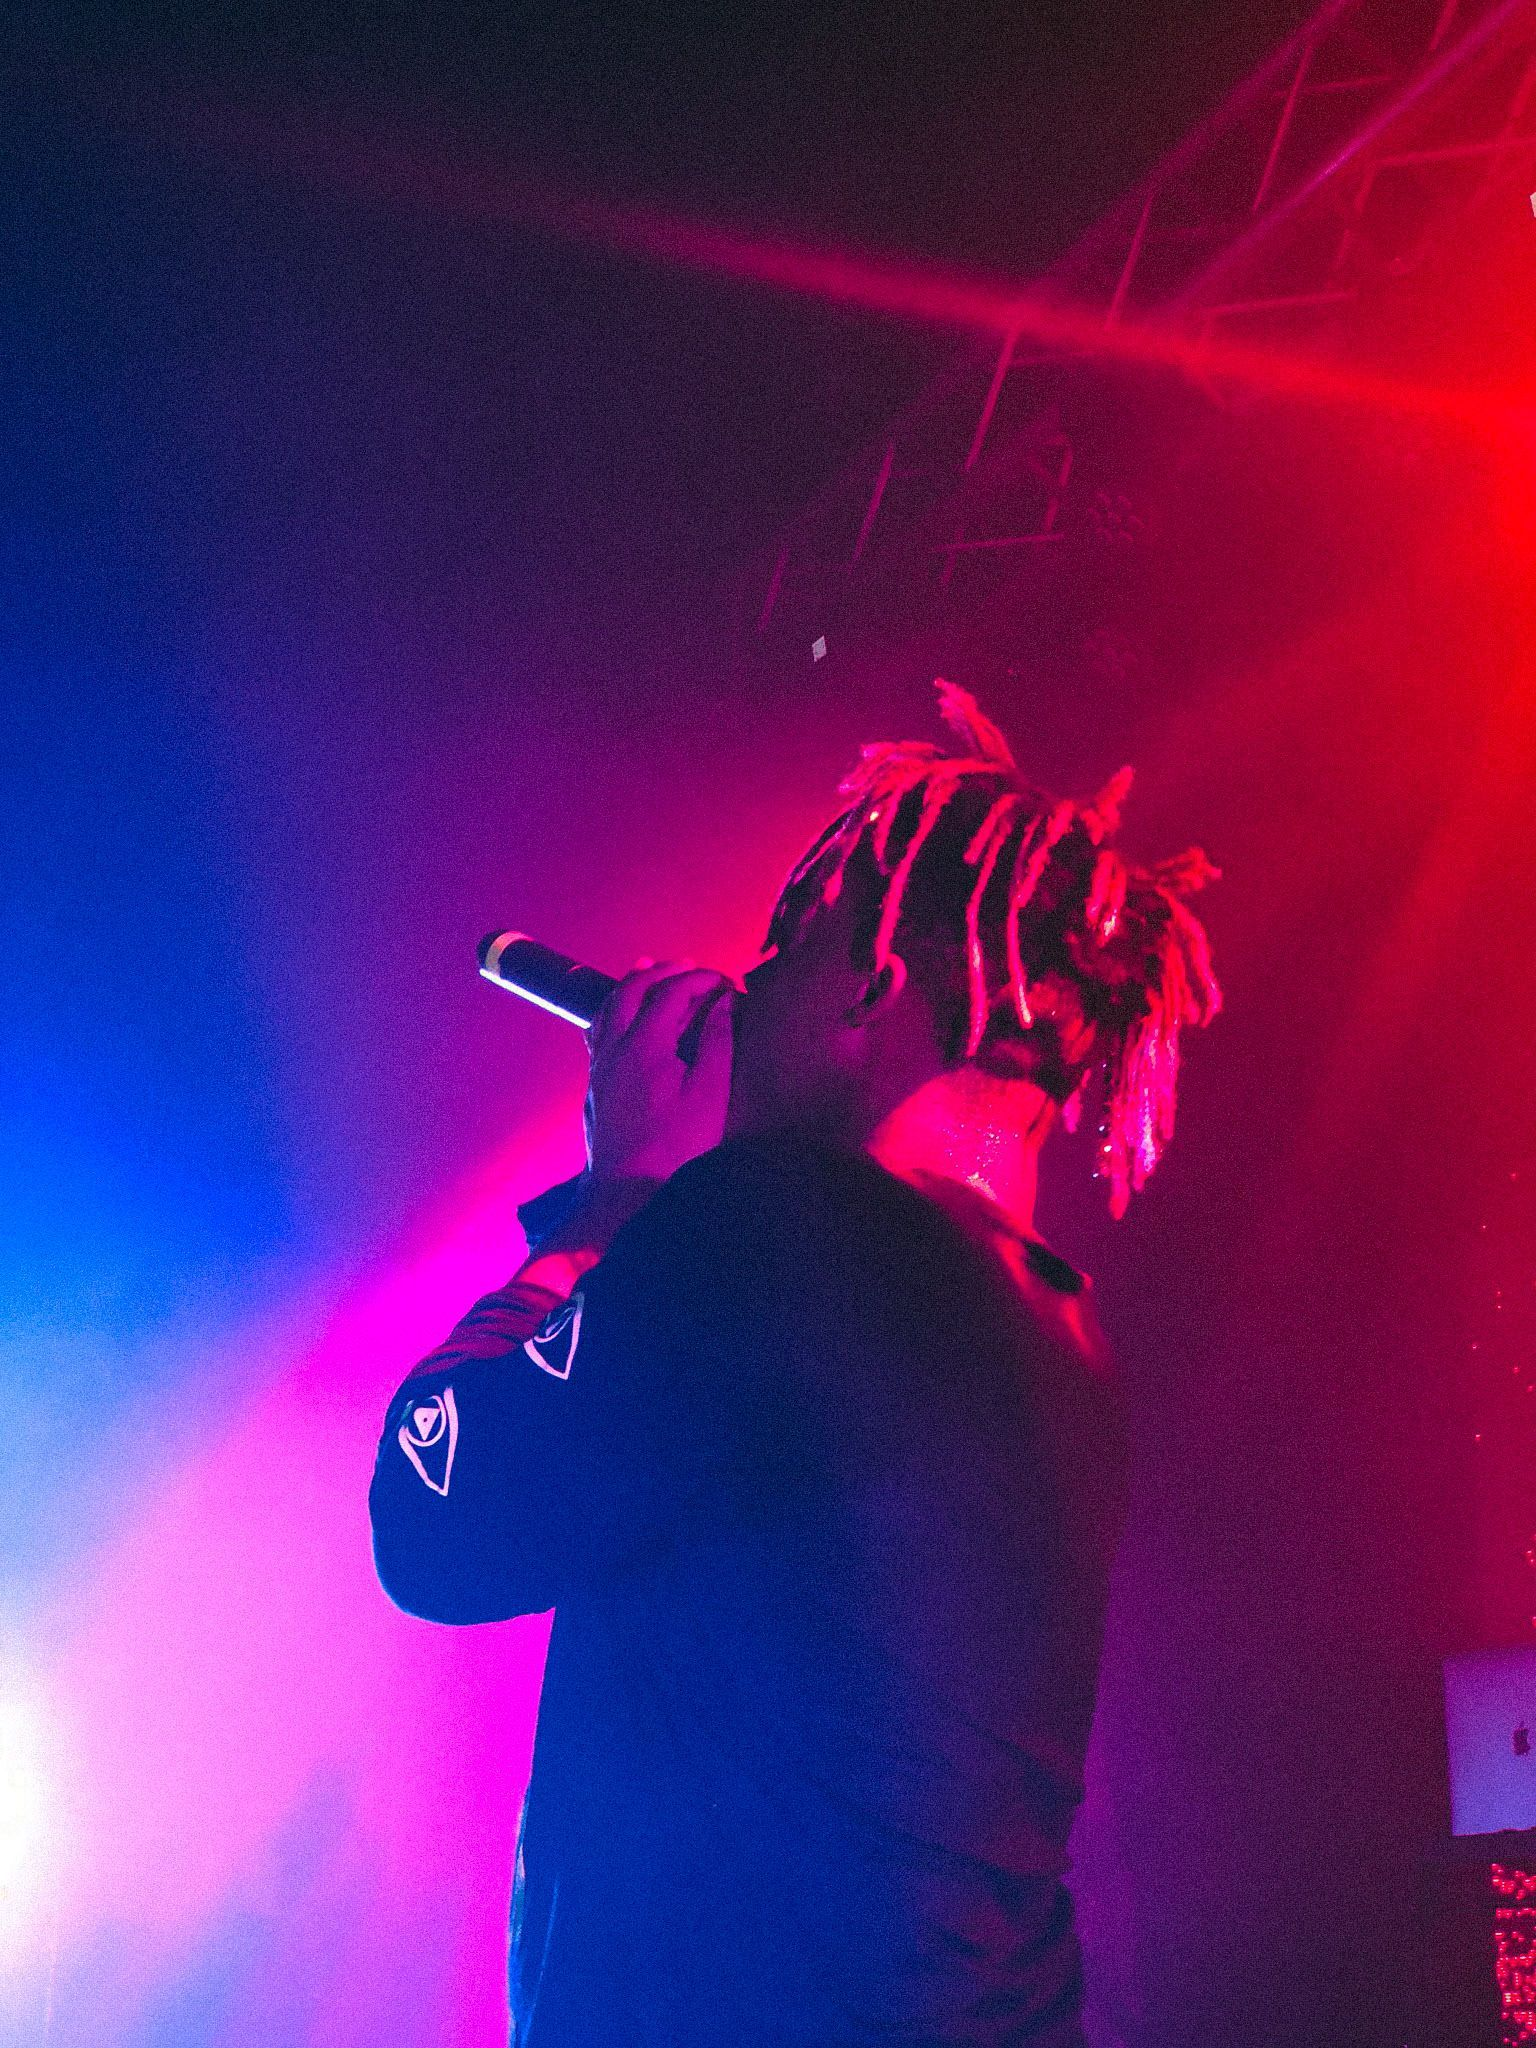 50+ Juice Wrld Wallpapers - Download at WallpaperBro in 2020 (With images) | Rap wallpaper ...